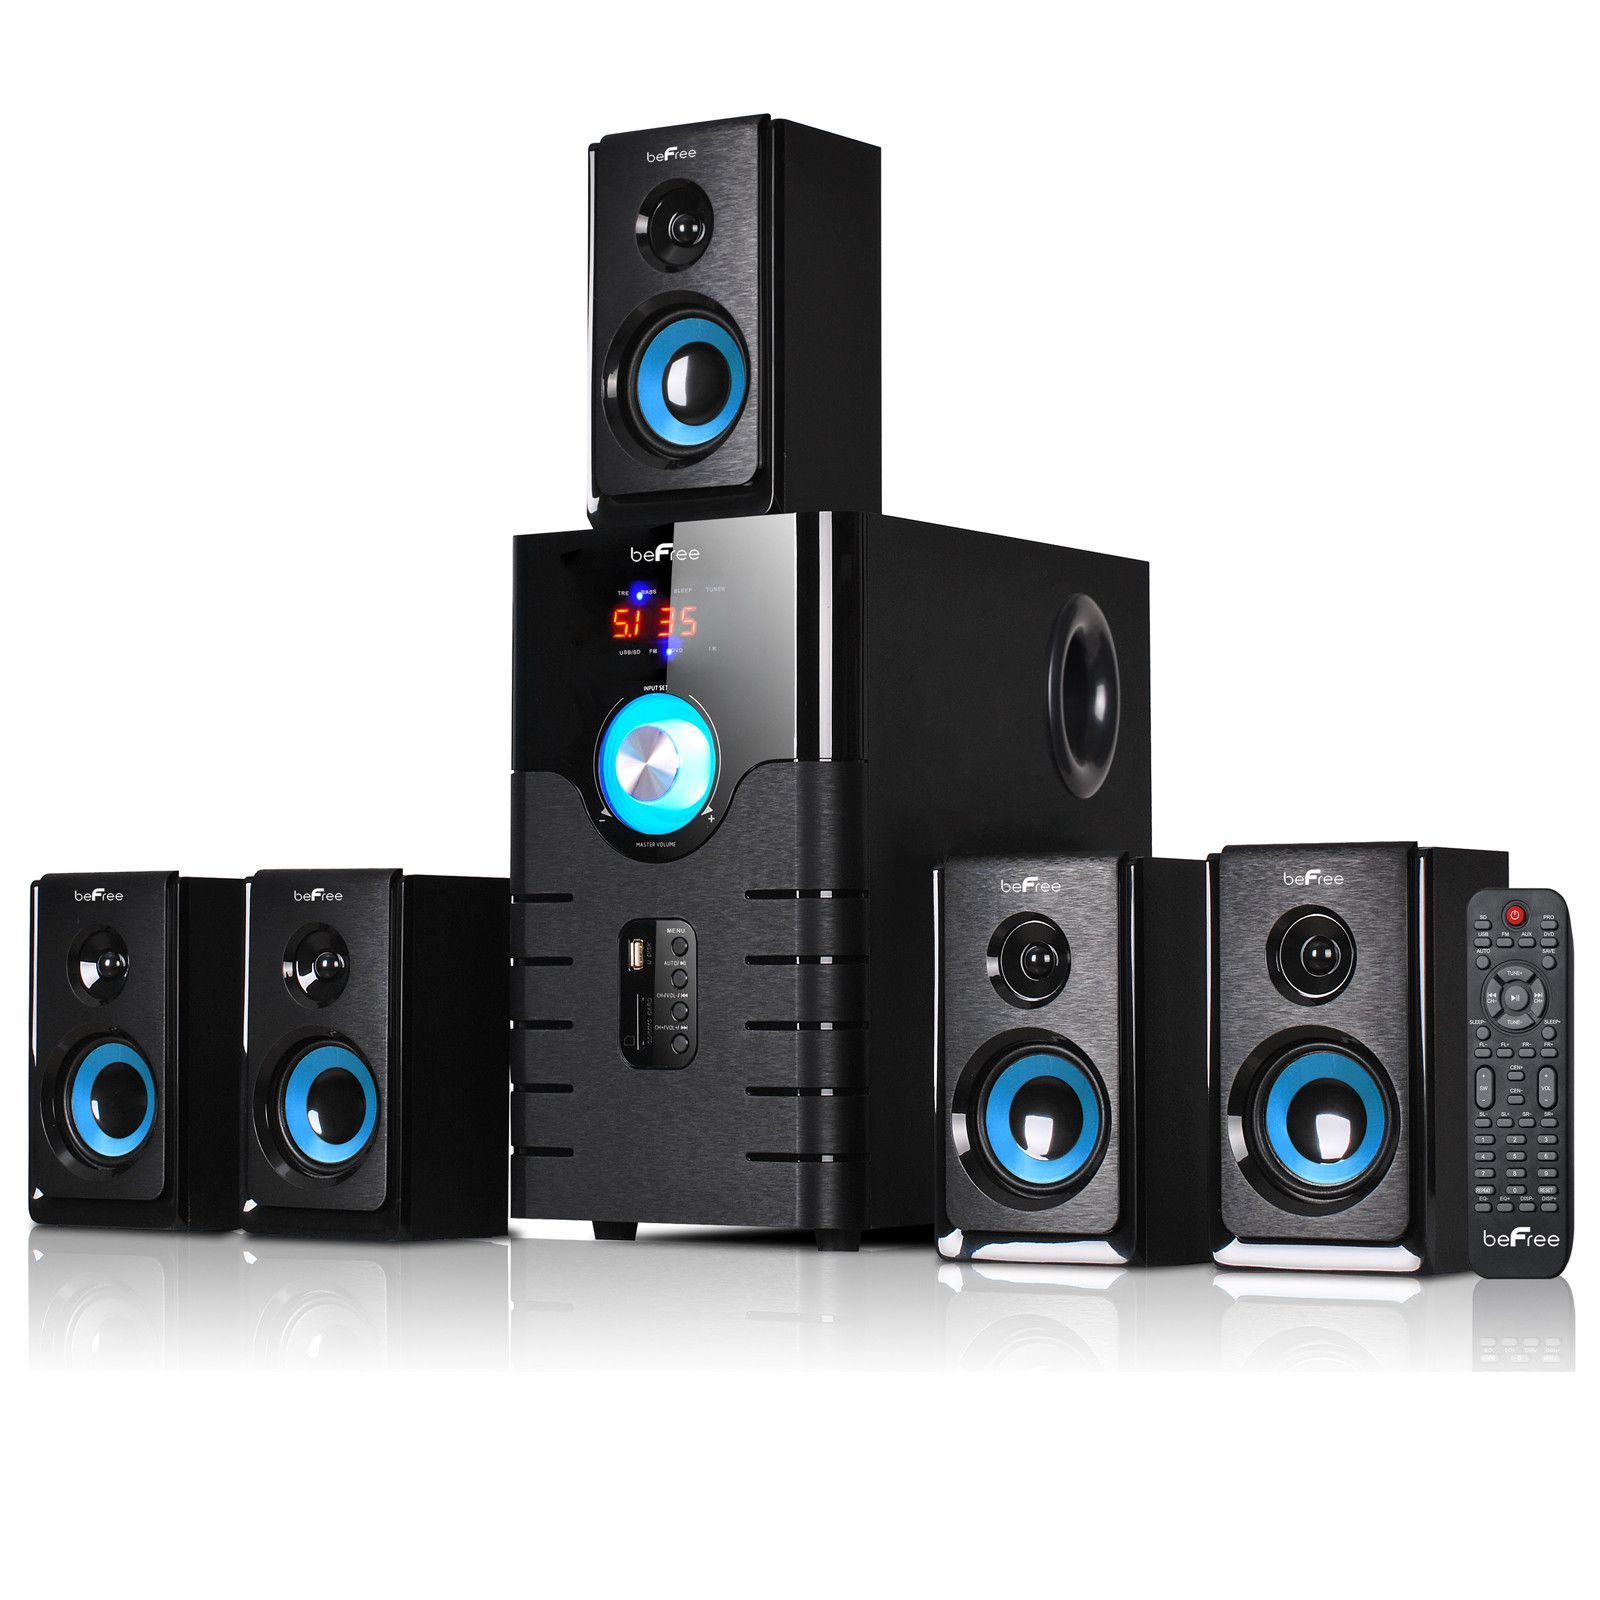 Complete your home theater experience with stunning sound from this ...